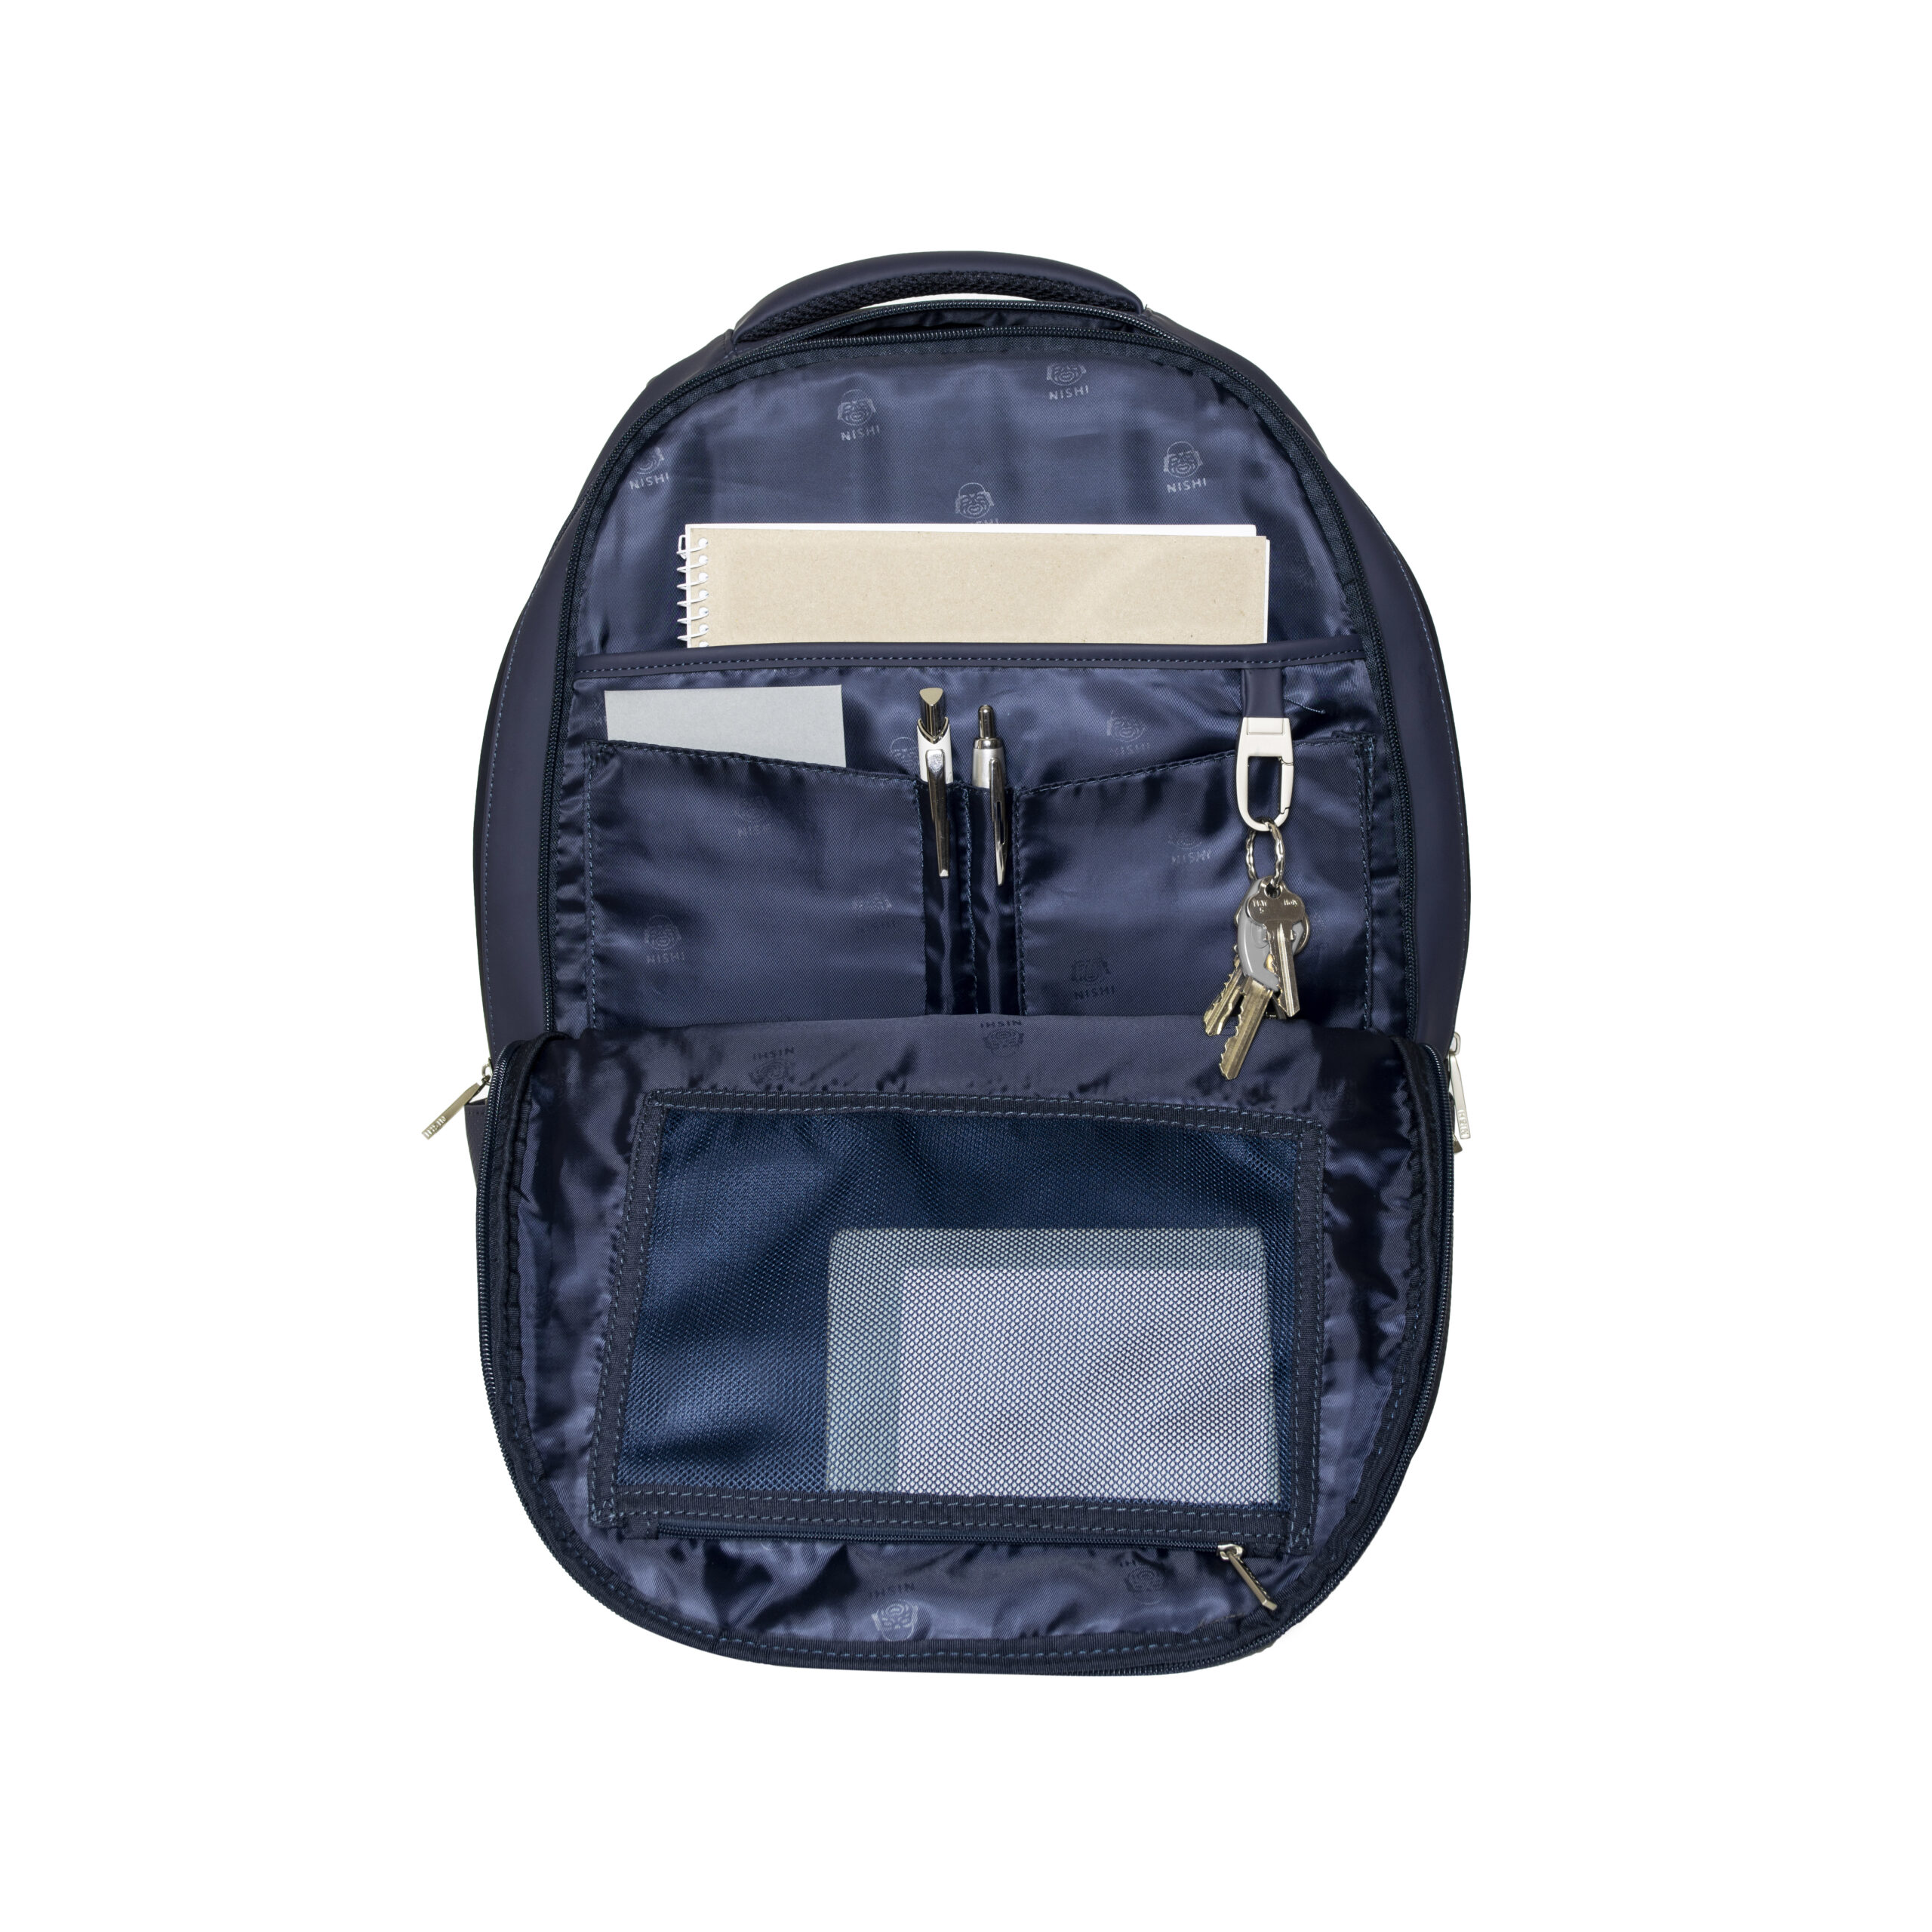 Business backpack - Compartment to stay organised